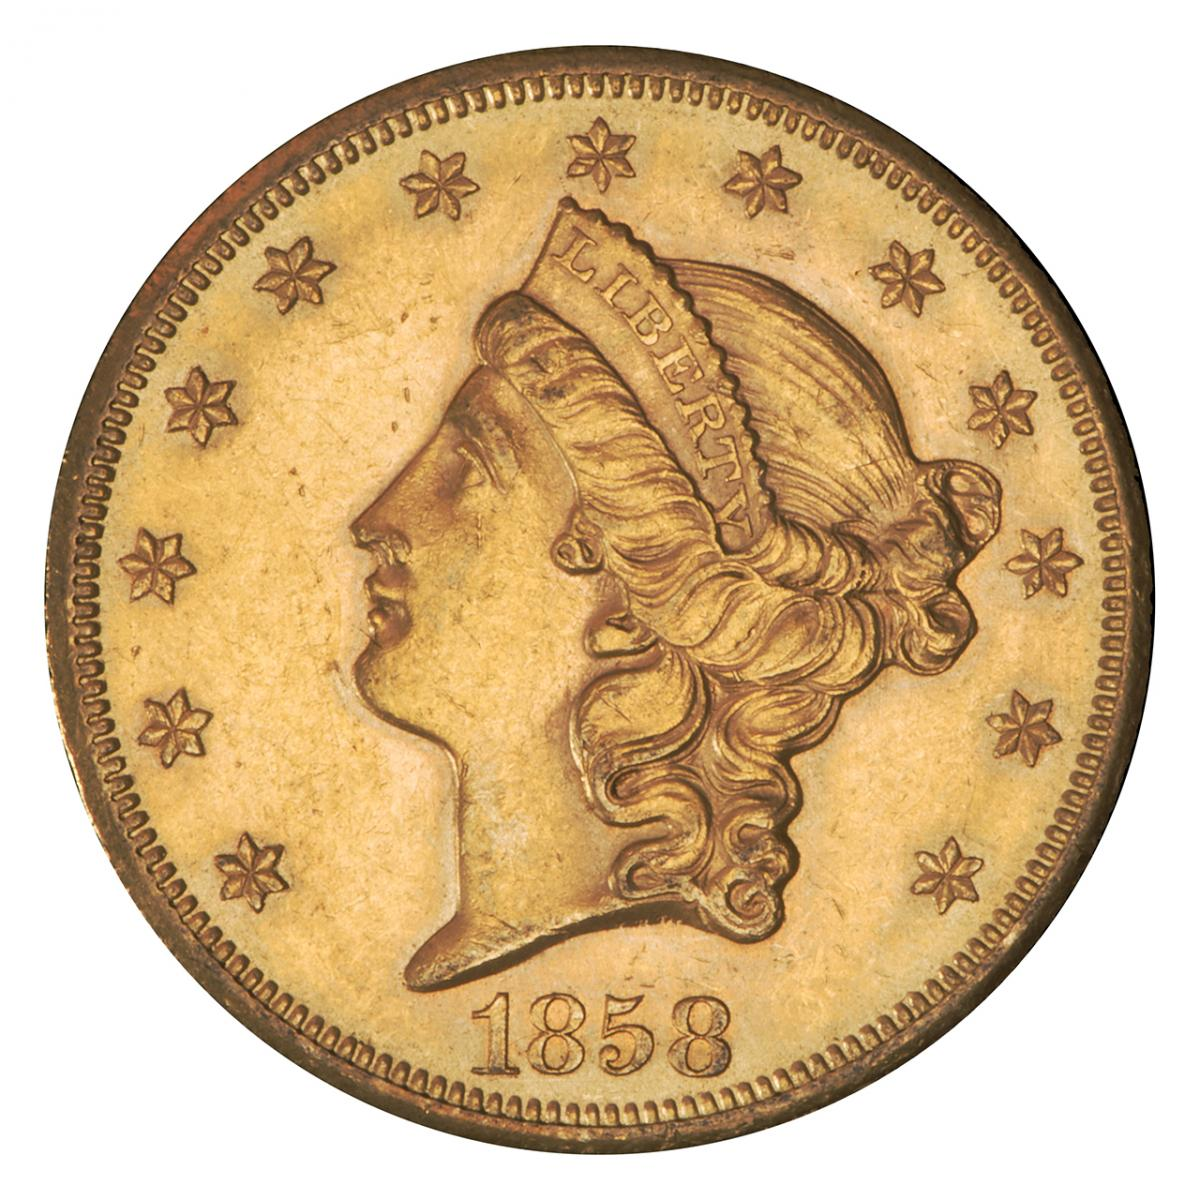 US gold $20 coin